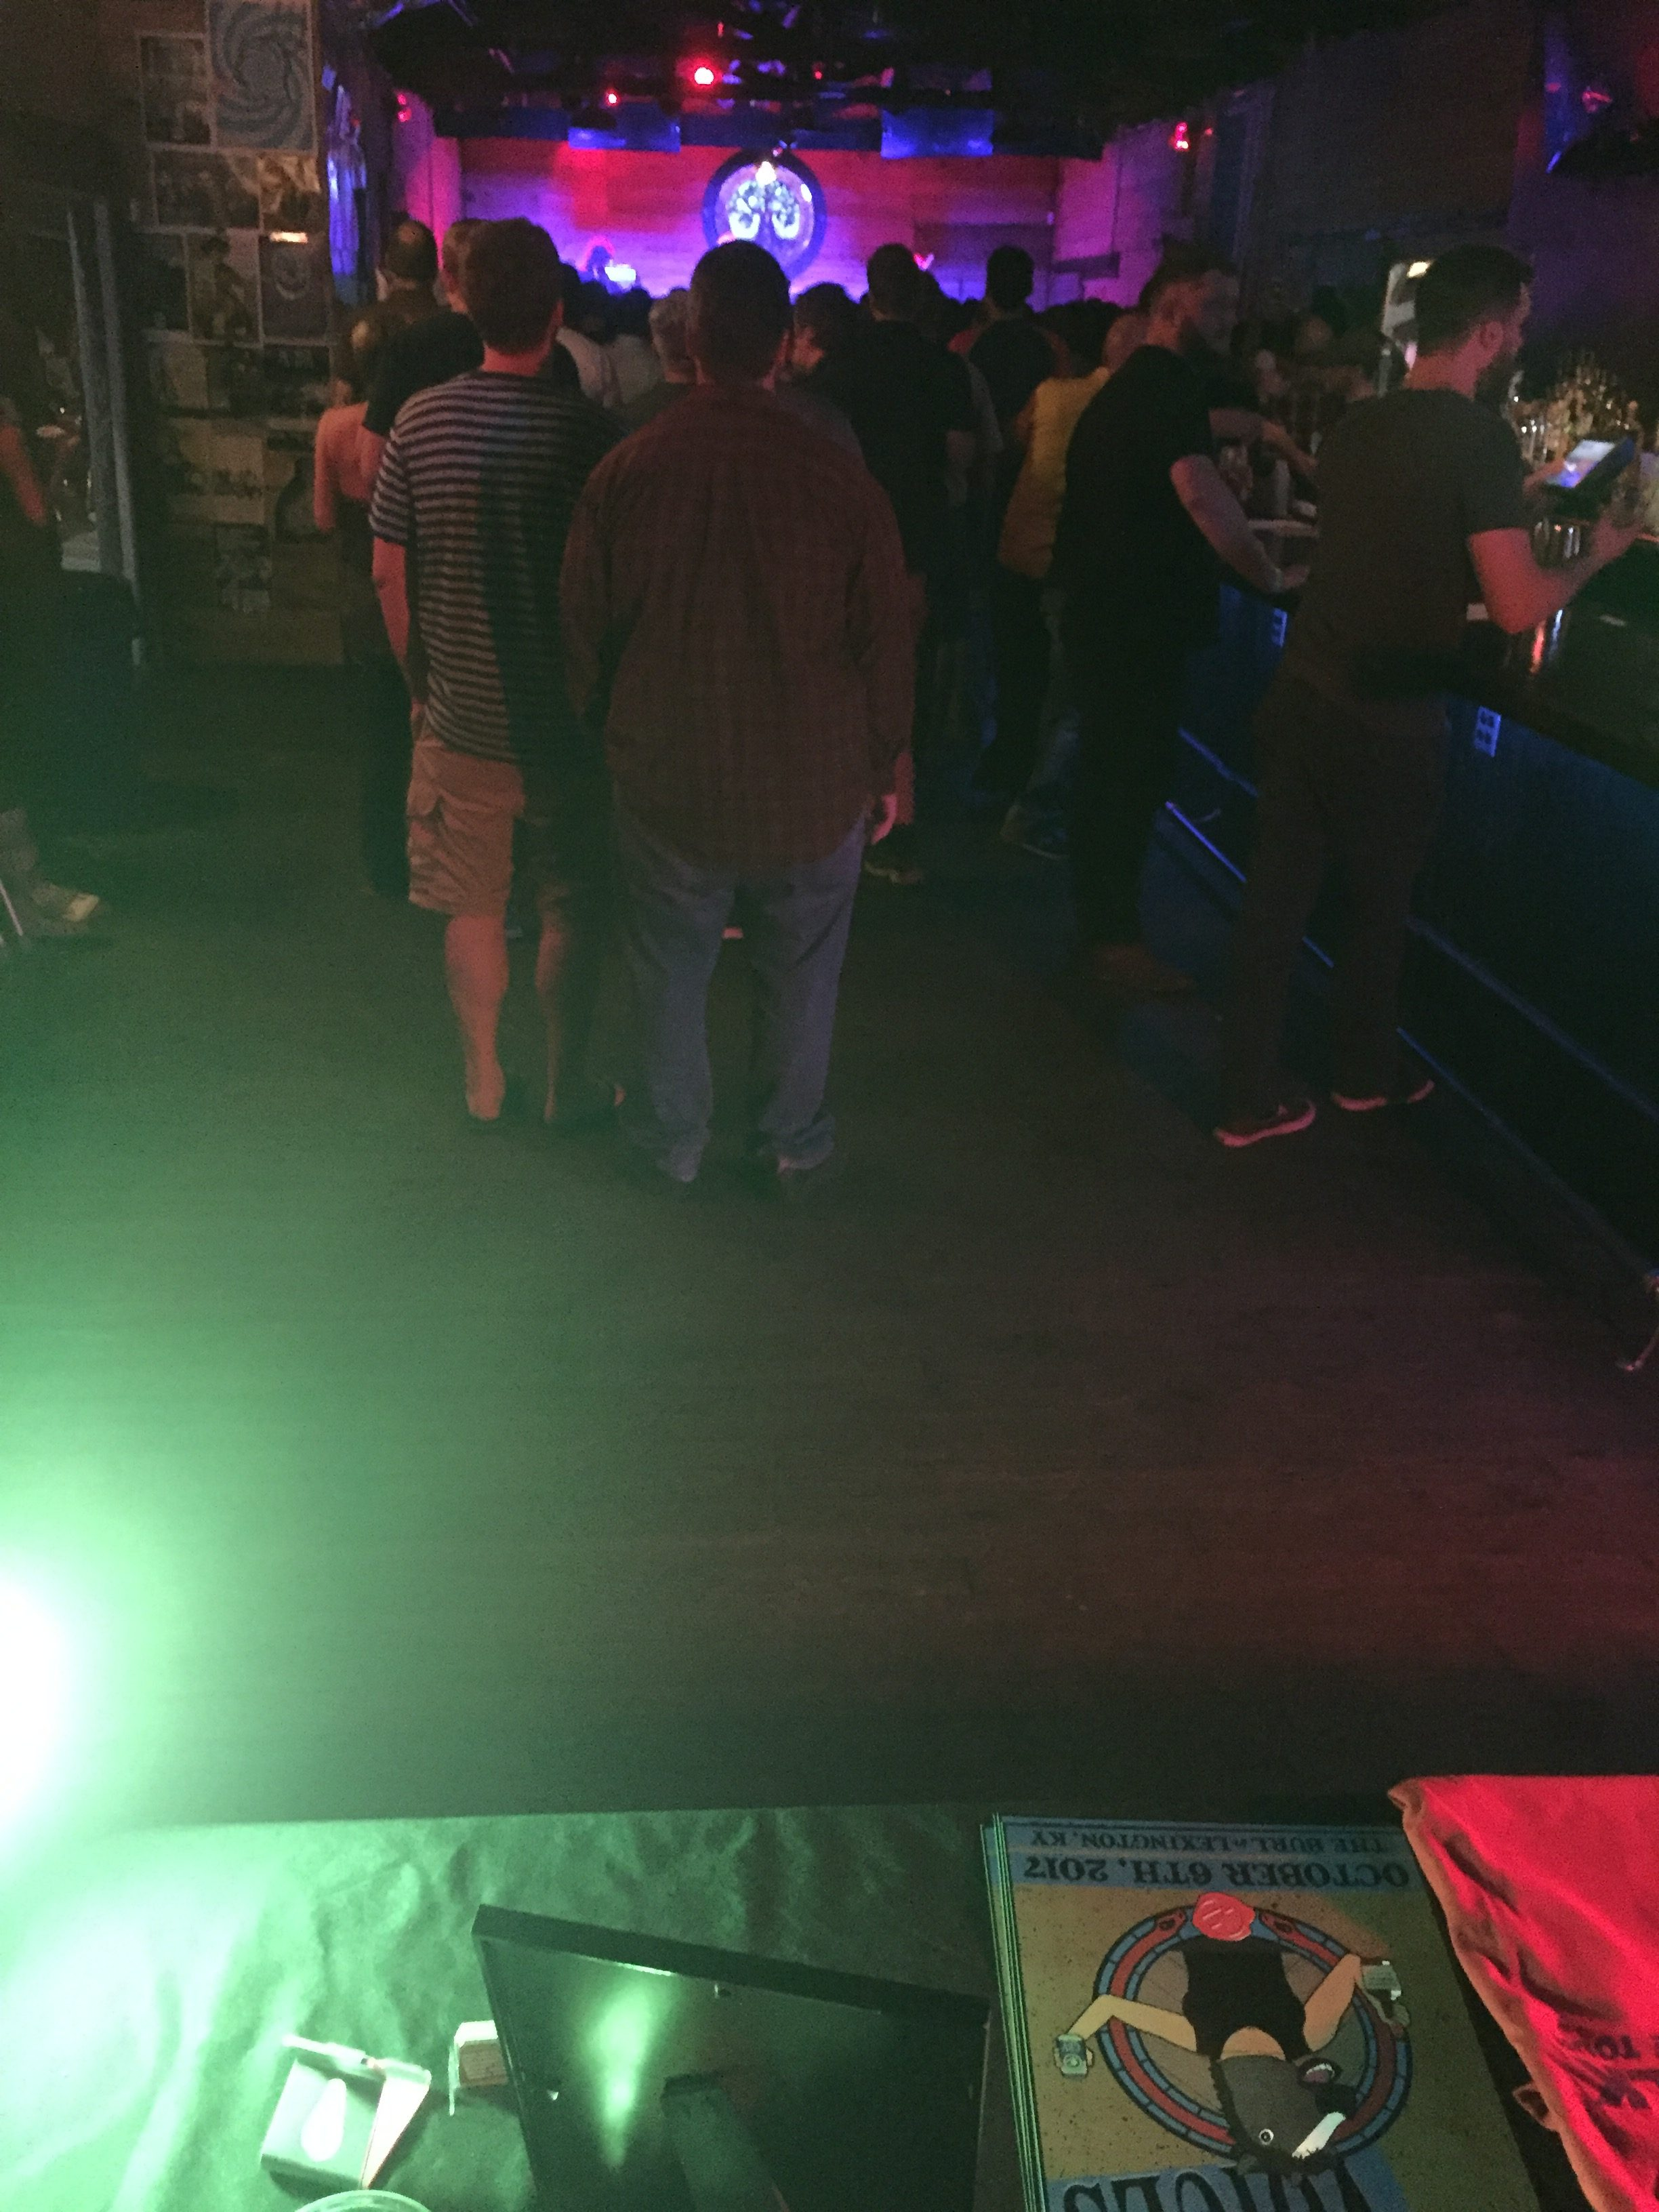 A view from the merch table of the sold out show at The Burl in Lexington, KY.